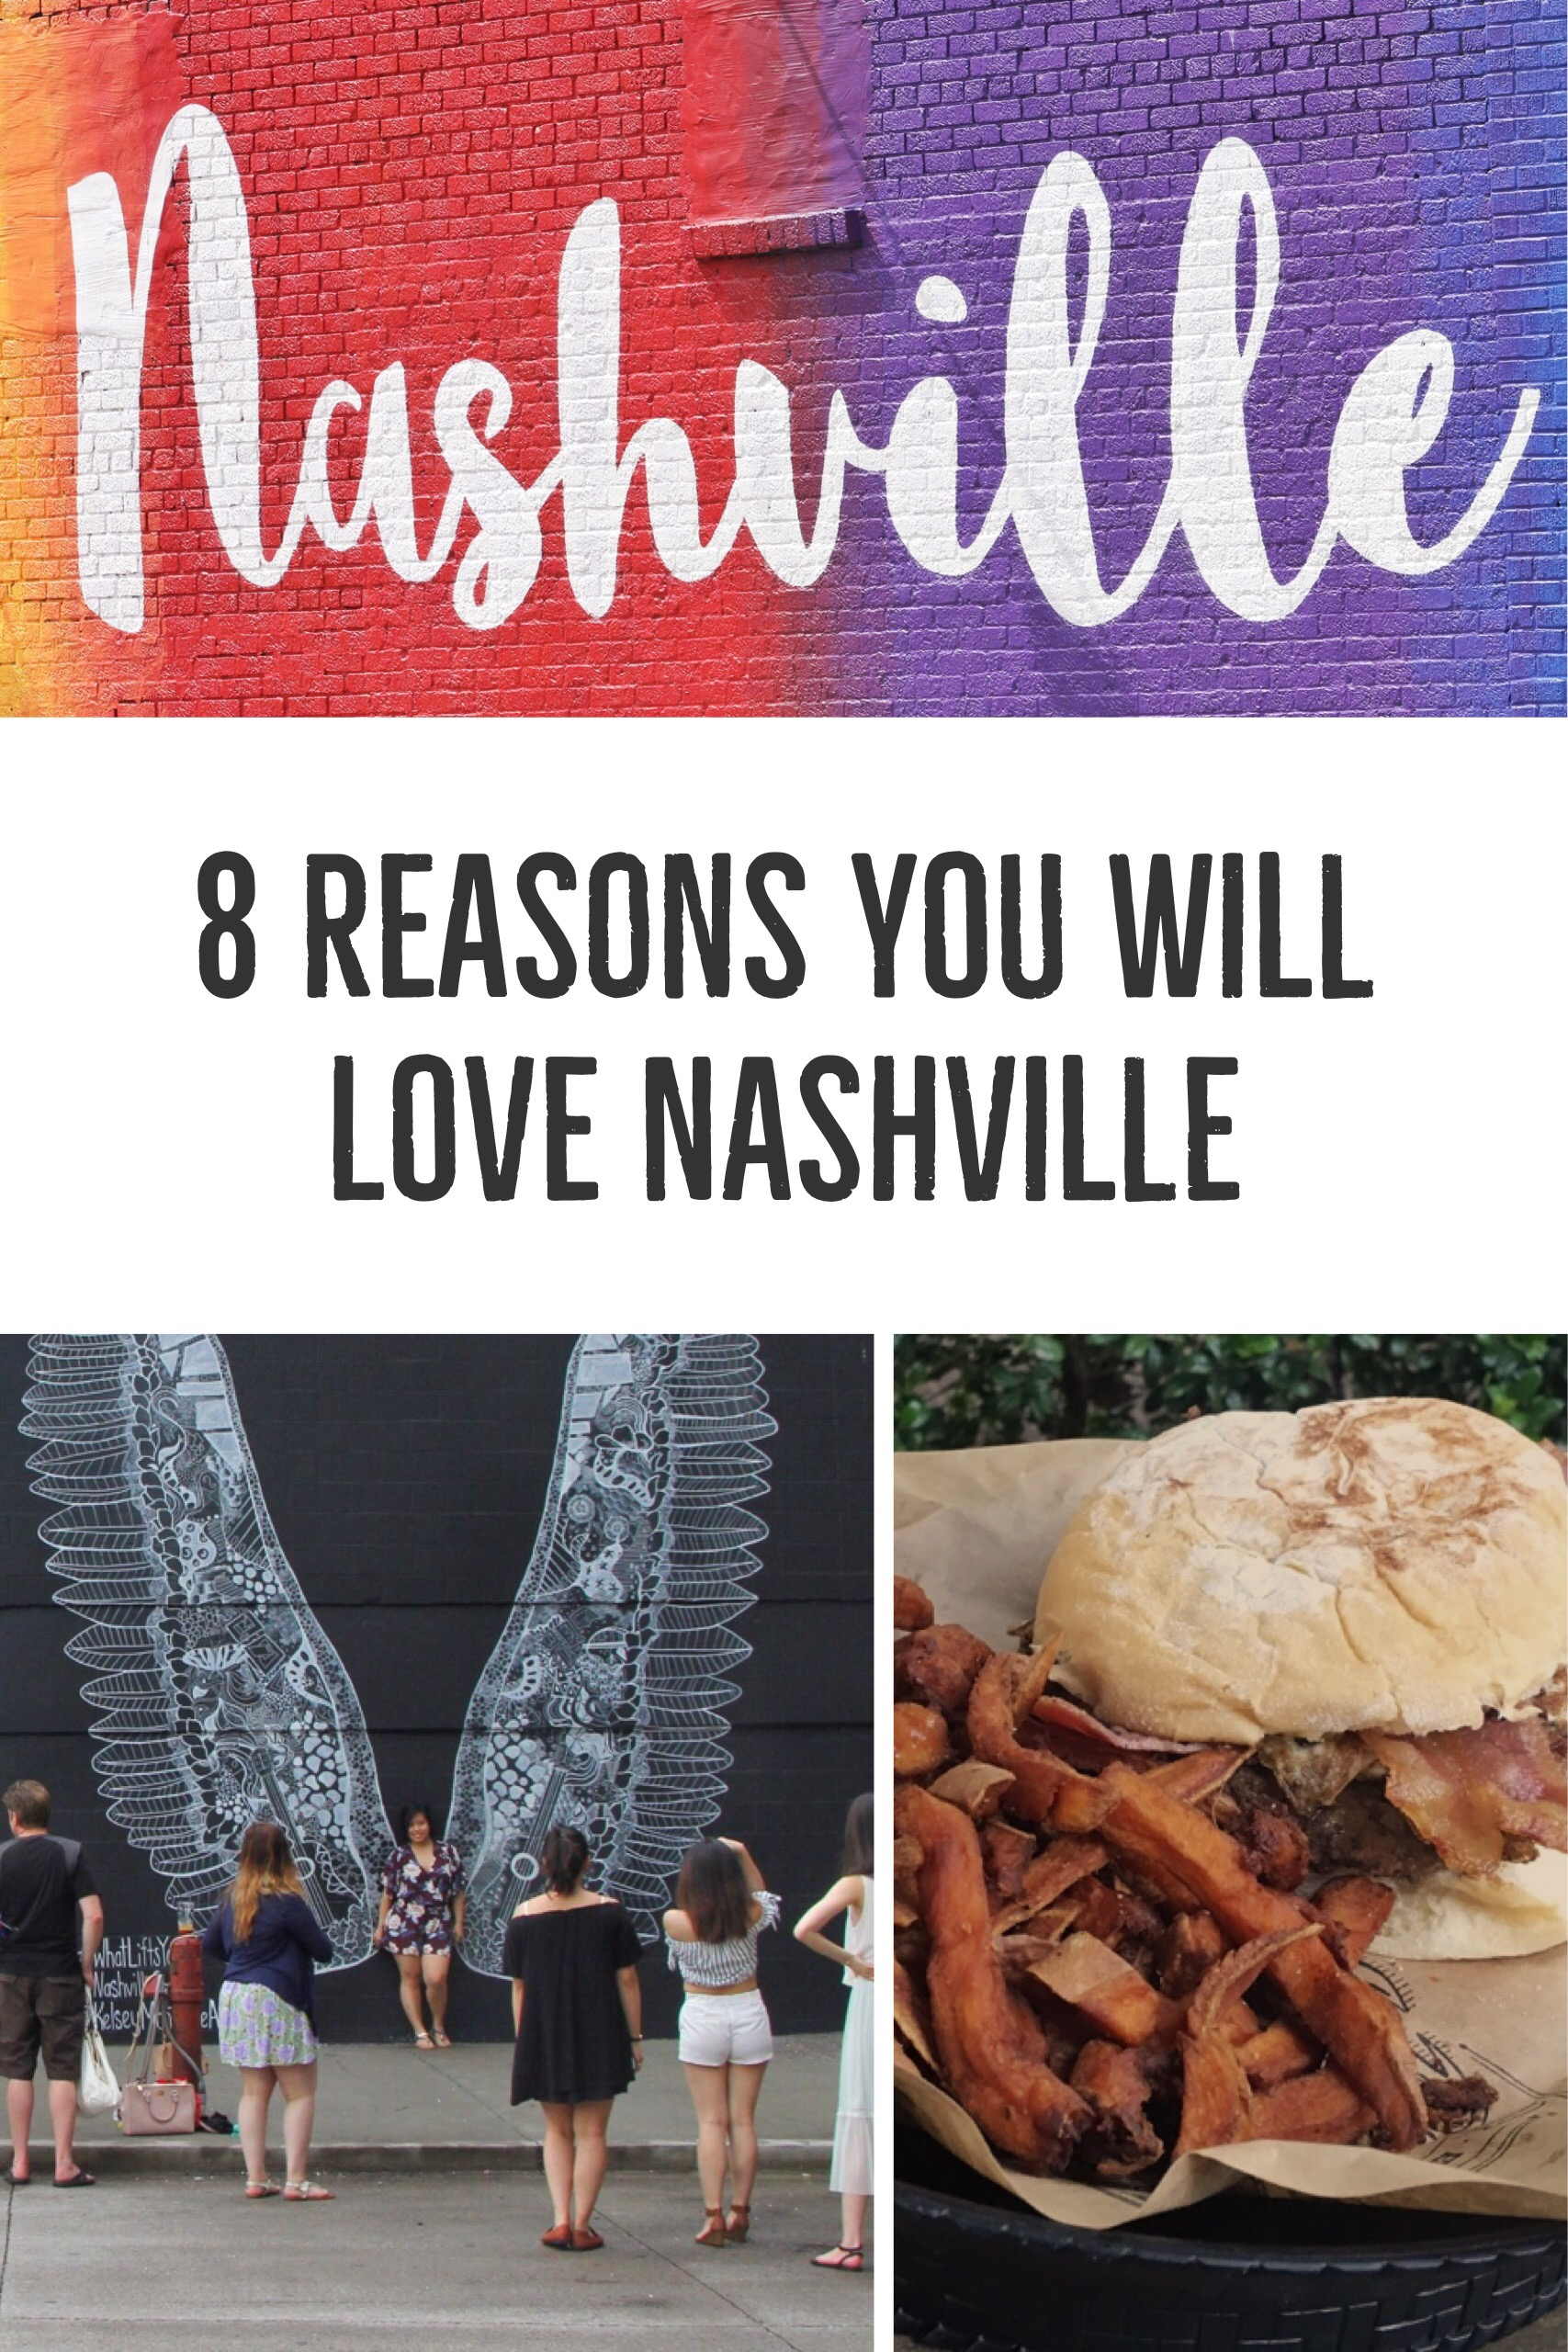 Here are 8 reasons you will love Nashville, Tennessee as your next vacation. Music city is great for live music, food, wine, culture, and more. Music City is more than bachelorette parties and country music!